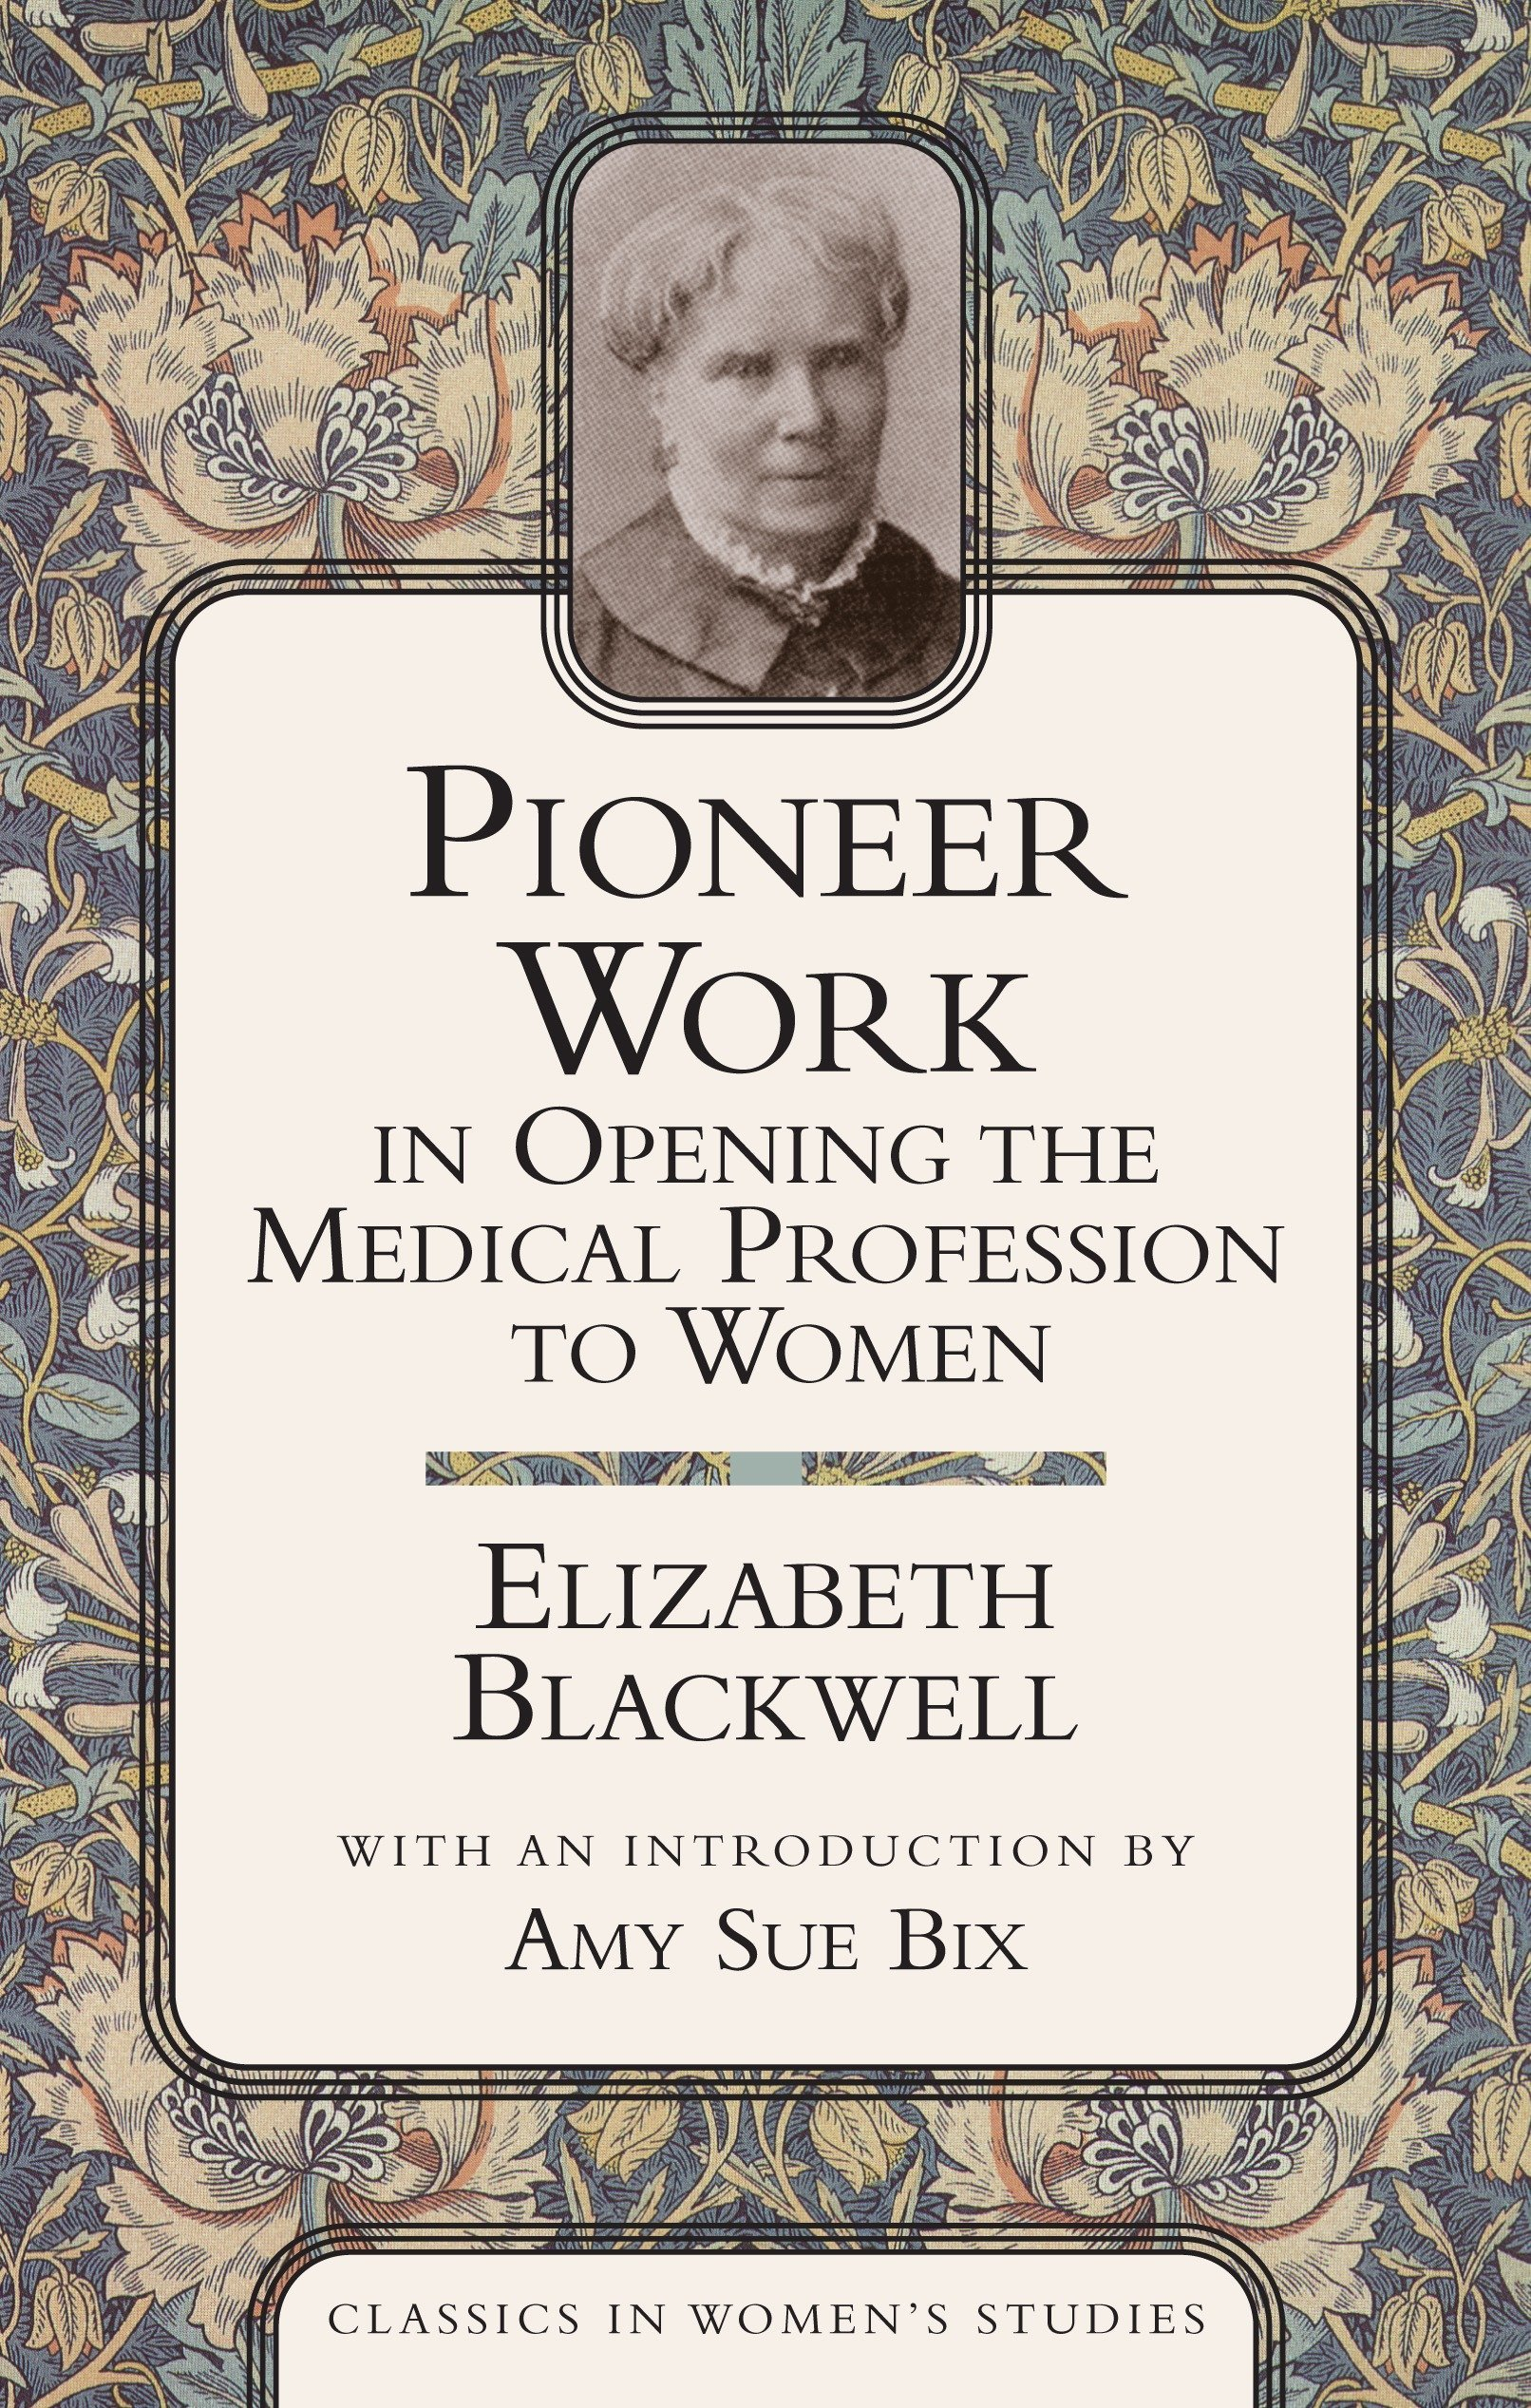 Pioneer Work In Opening The Medical Profession To Women (Classics in Women's Studies) PDF